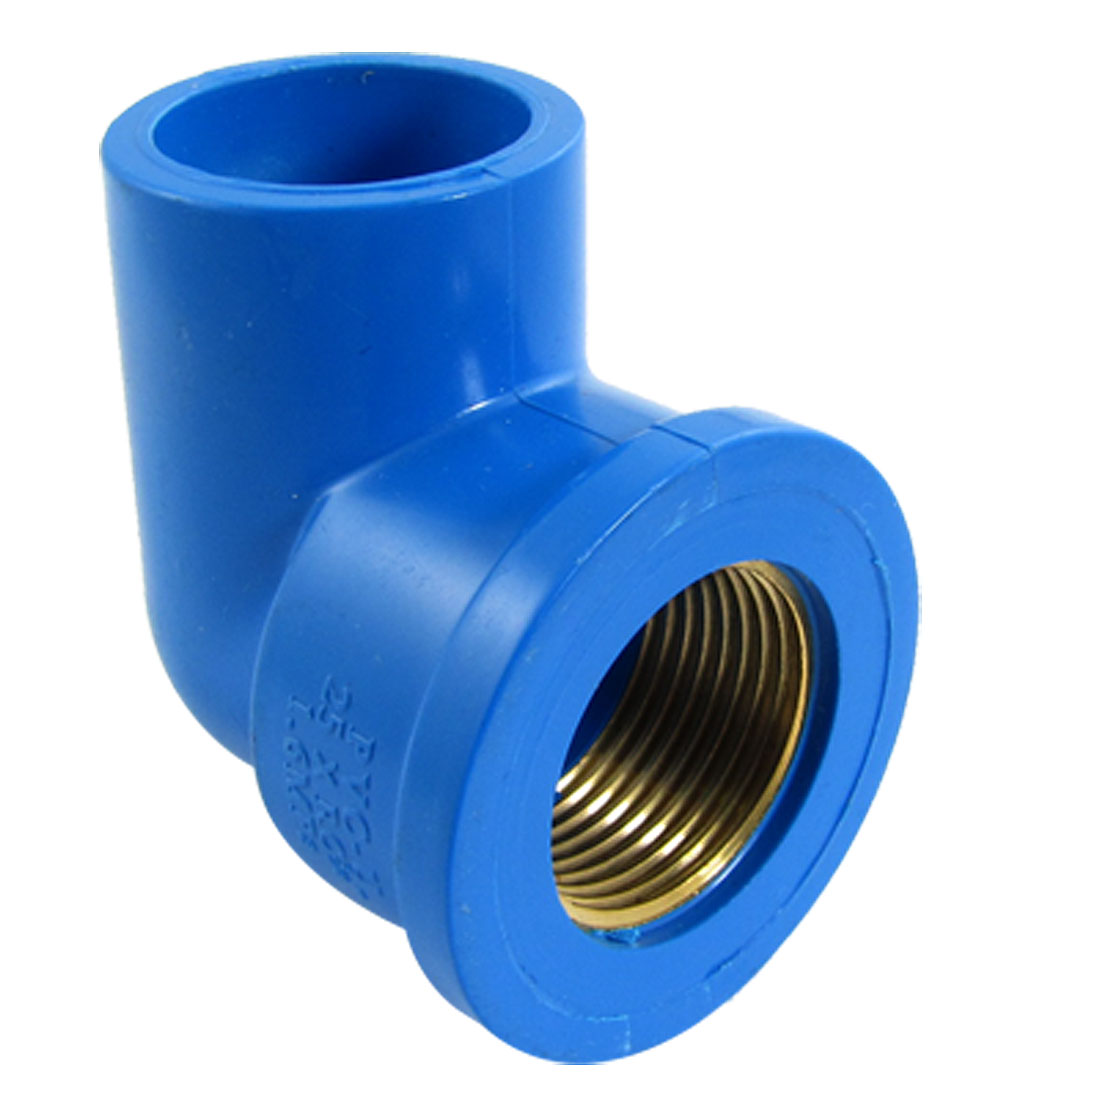 24mm Screw Female to Smooth Female PVC-U Water Pipe 90 Degree Adapter